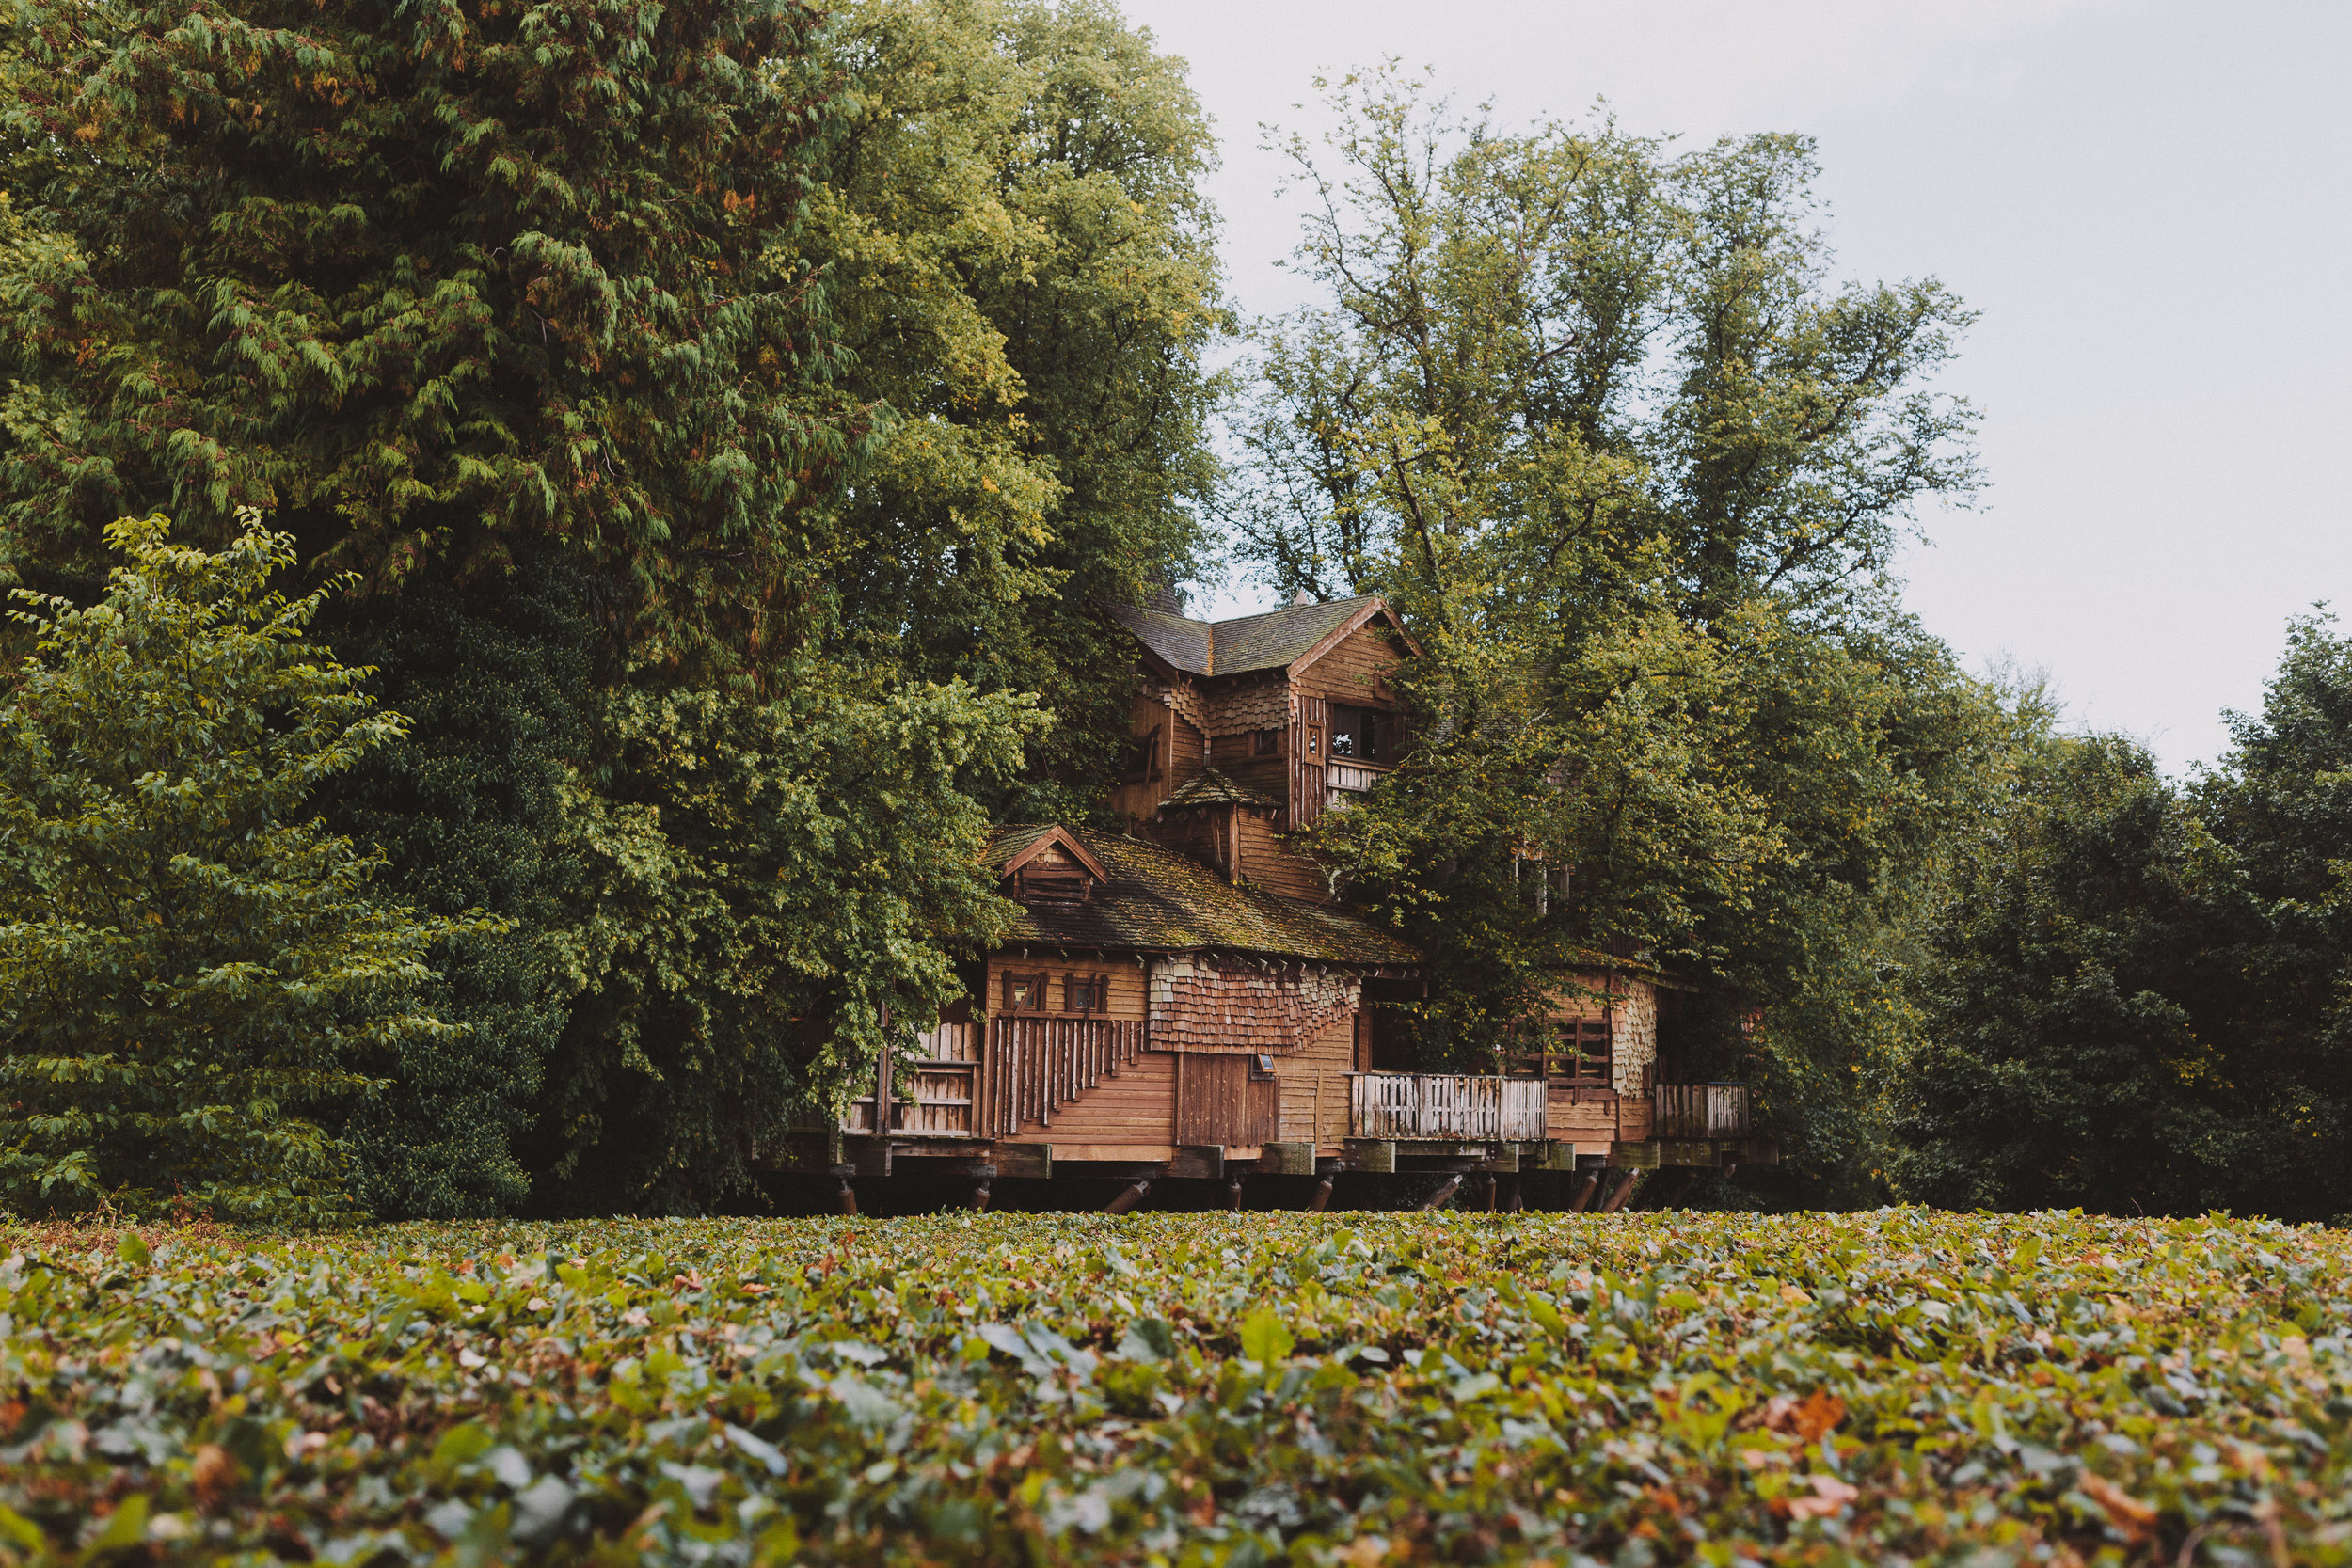 Alnwick Treehouse wedding venue by Barry Forshaw